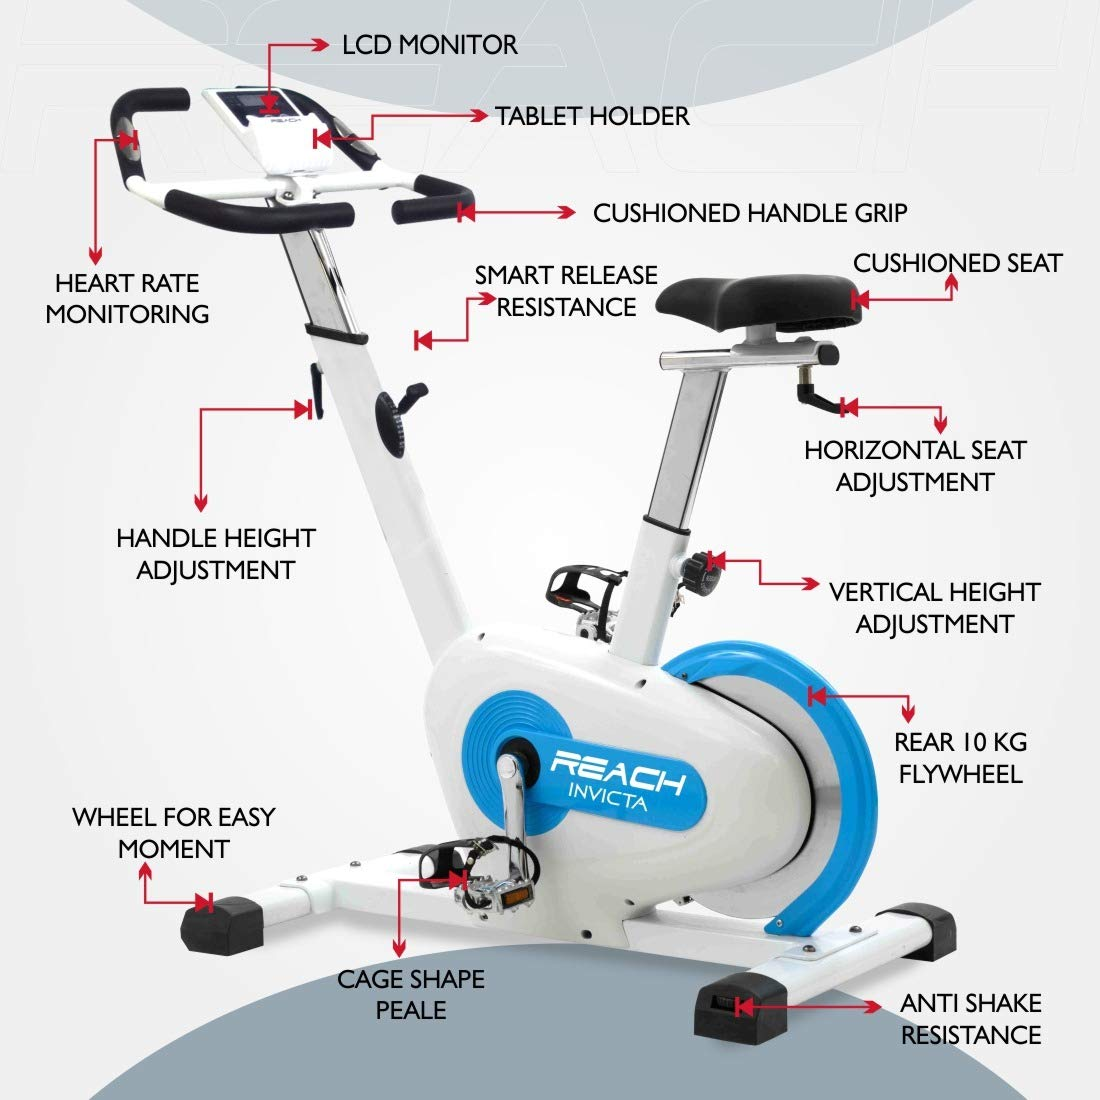 Reach Invicta Spin Bike